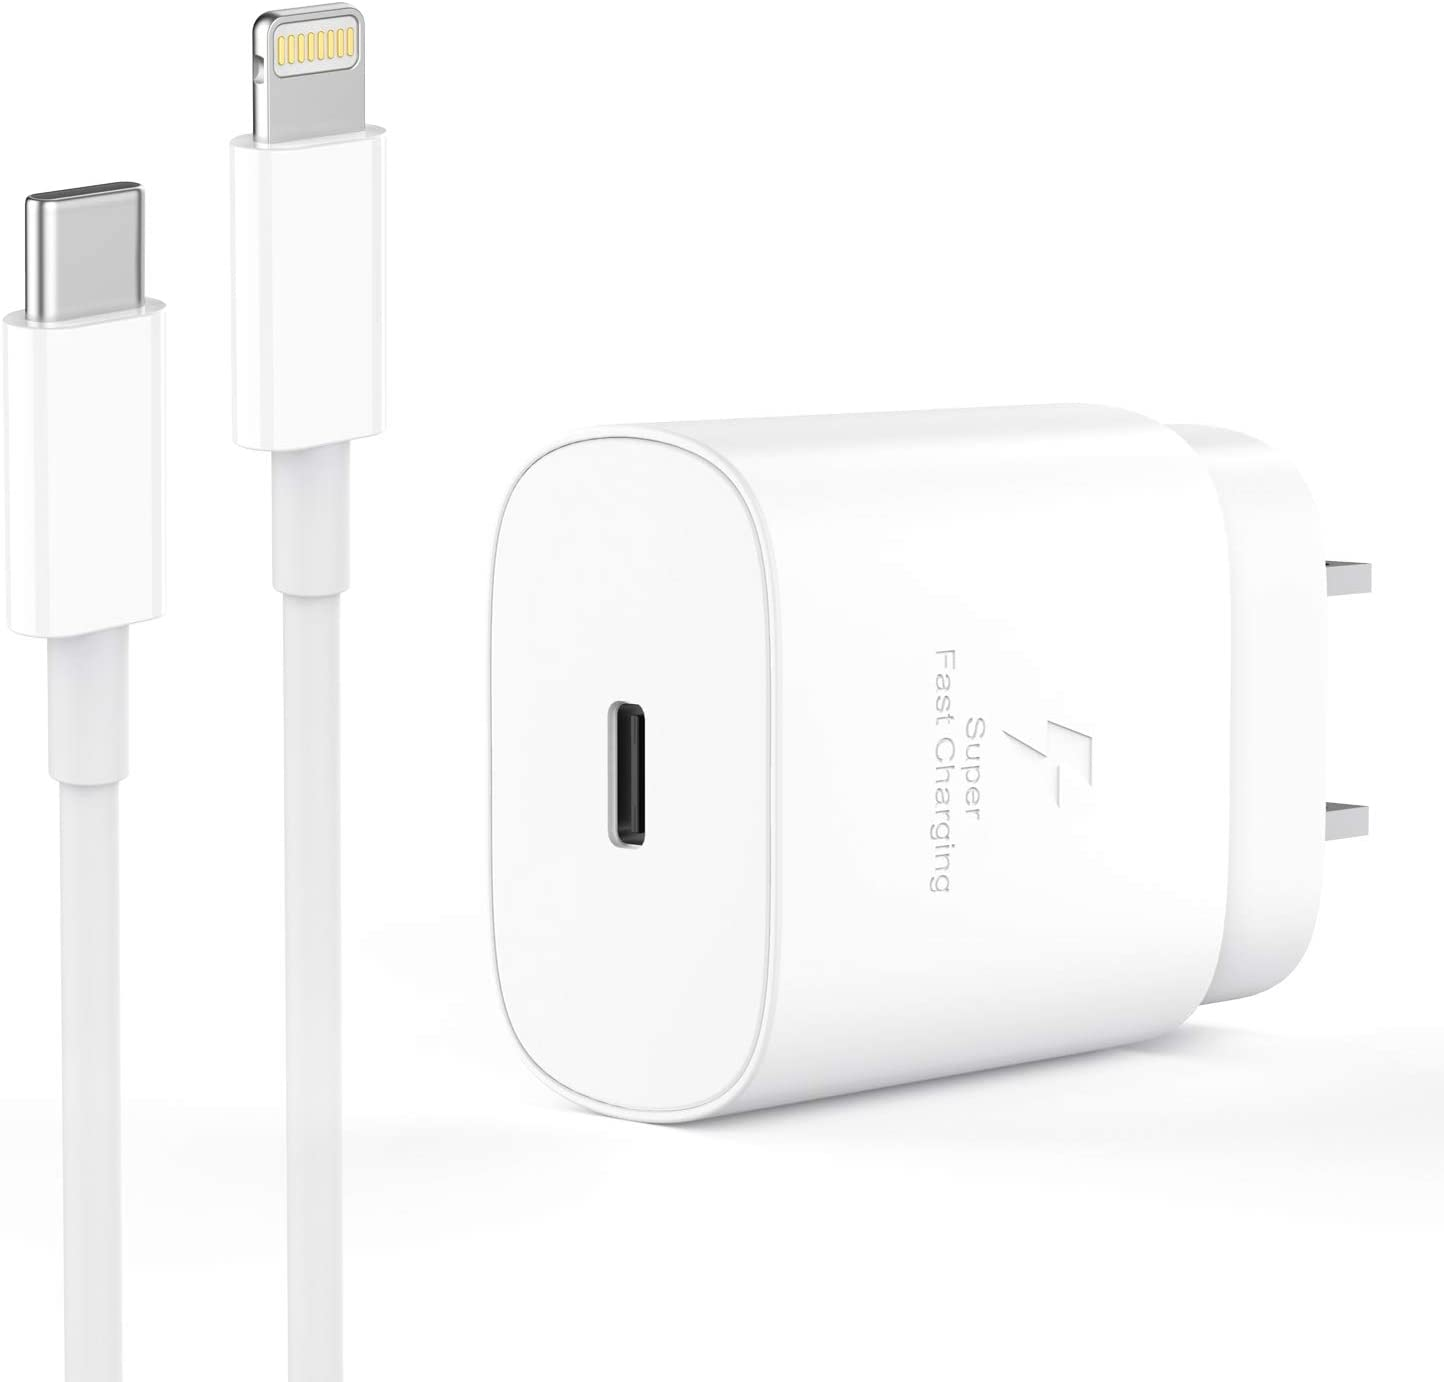 20W PD Fast Charger Compatible with iPhone 12/12 Mini/12 Pro Max/Xs Max XR X 11 10 8 Plus iPad Pro [ iPhone 7 6 6s Plus 5S ], Wall Plug Charger Adapter with 5.0FT USB Type C to Lightning Cable